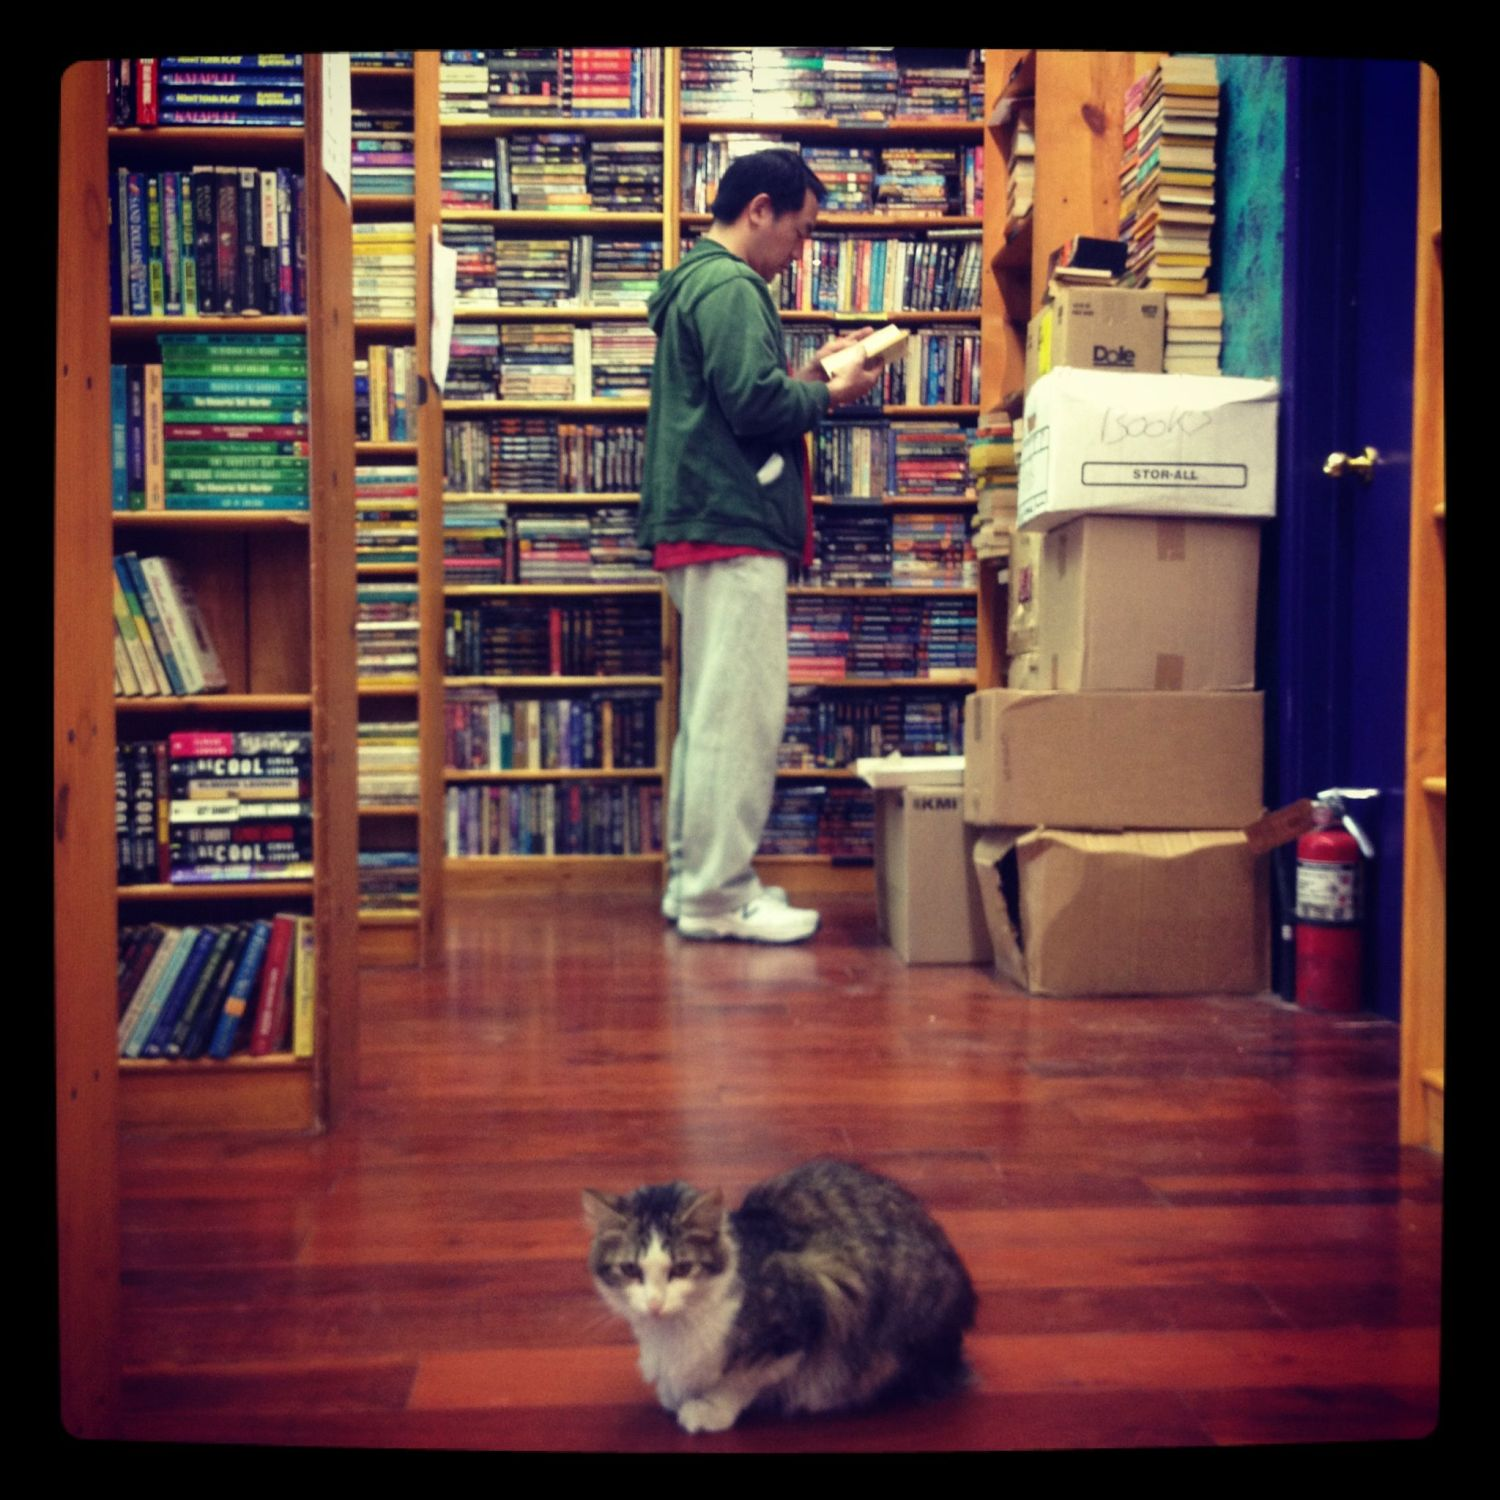 Man in bookstore, with cat, thinking about editing.